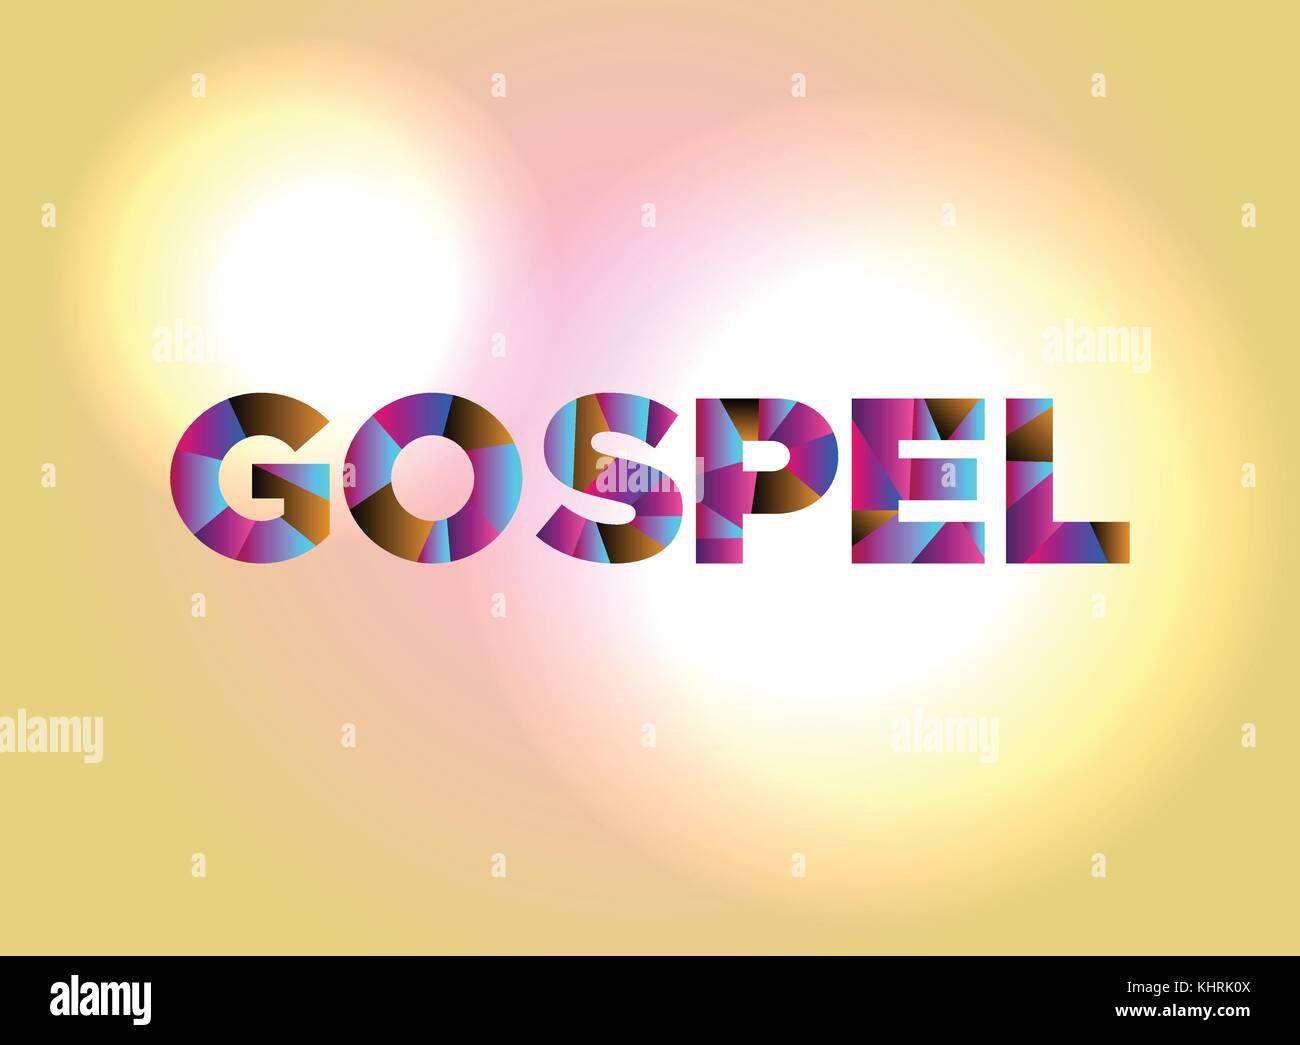 The word GOSPEL written in colorful abstract word art on a vibrant background. Vector EPS 10 available. - Stock Vector